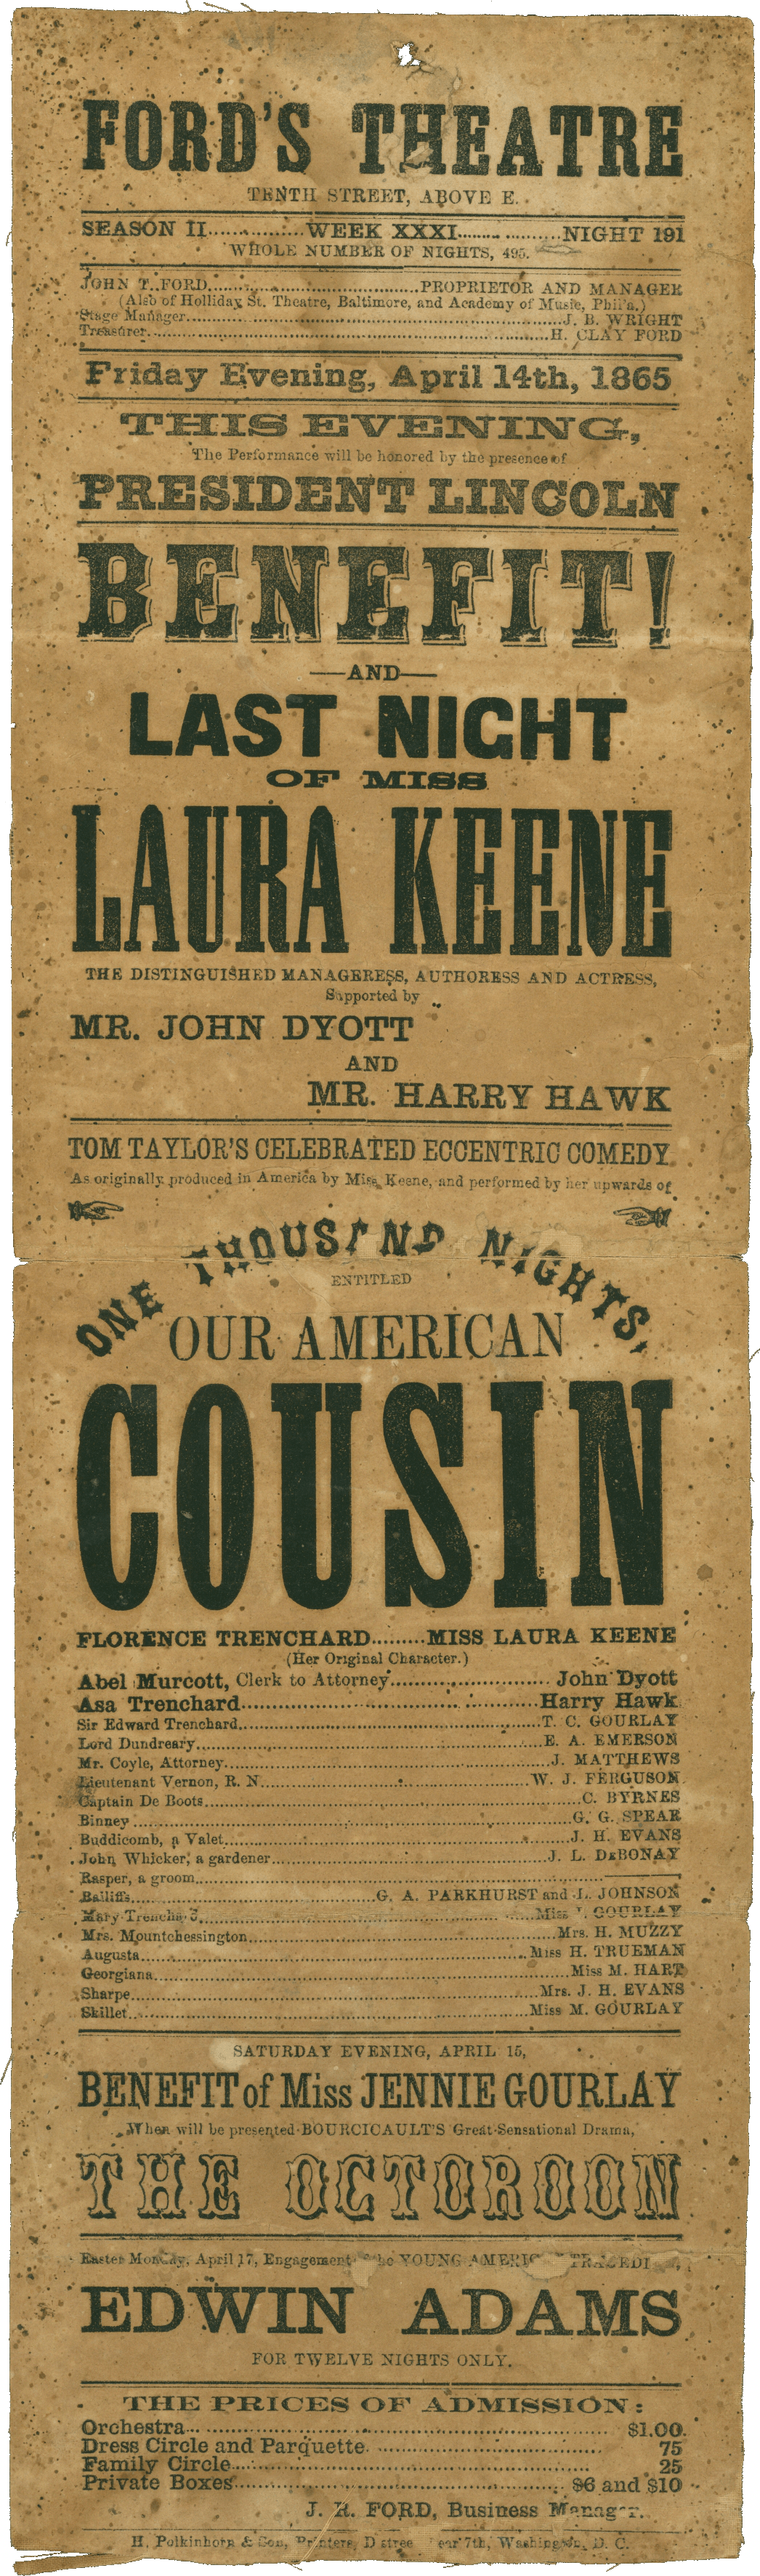 https://i1.wp.com/upload.wikimedia.org/wikipedia/commons/8/87/Fords_Theatre_Playbill_1865-04-14.png